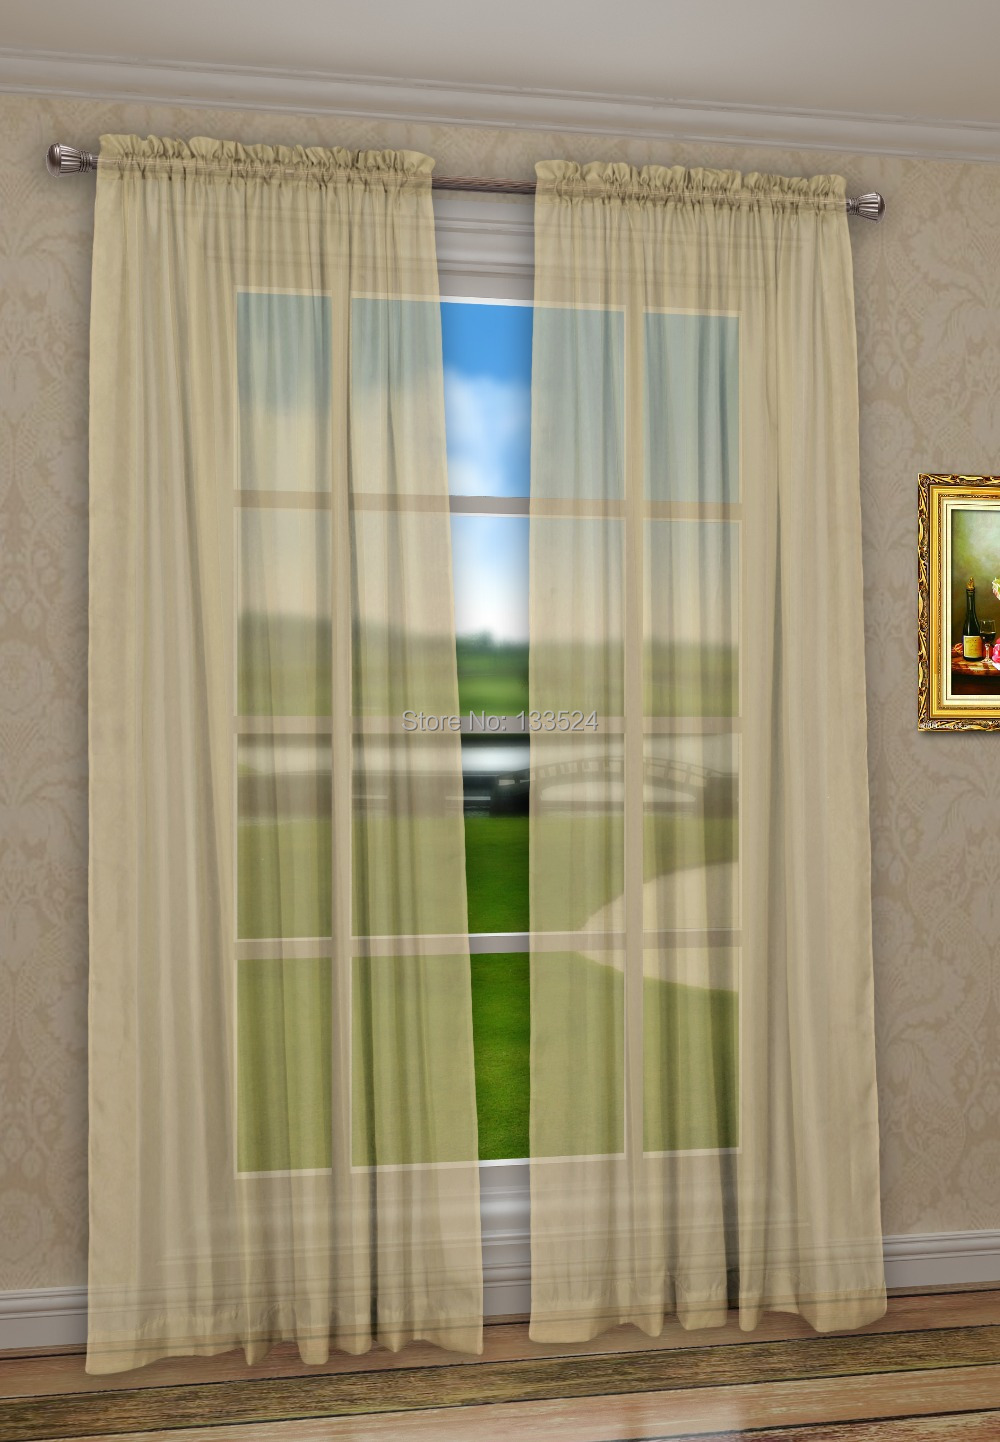 Sheer yellow curtains - Panel Voile Sheer Sheers Solid Color Sand Yellow 60 X 45 In Curtains